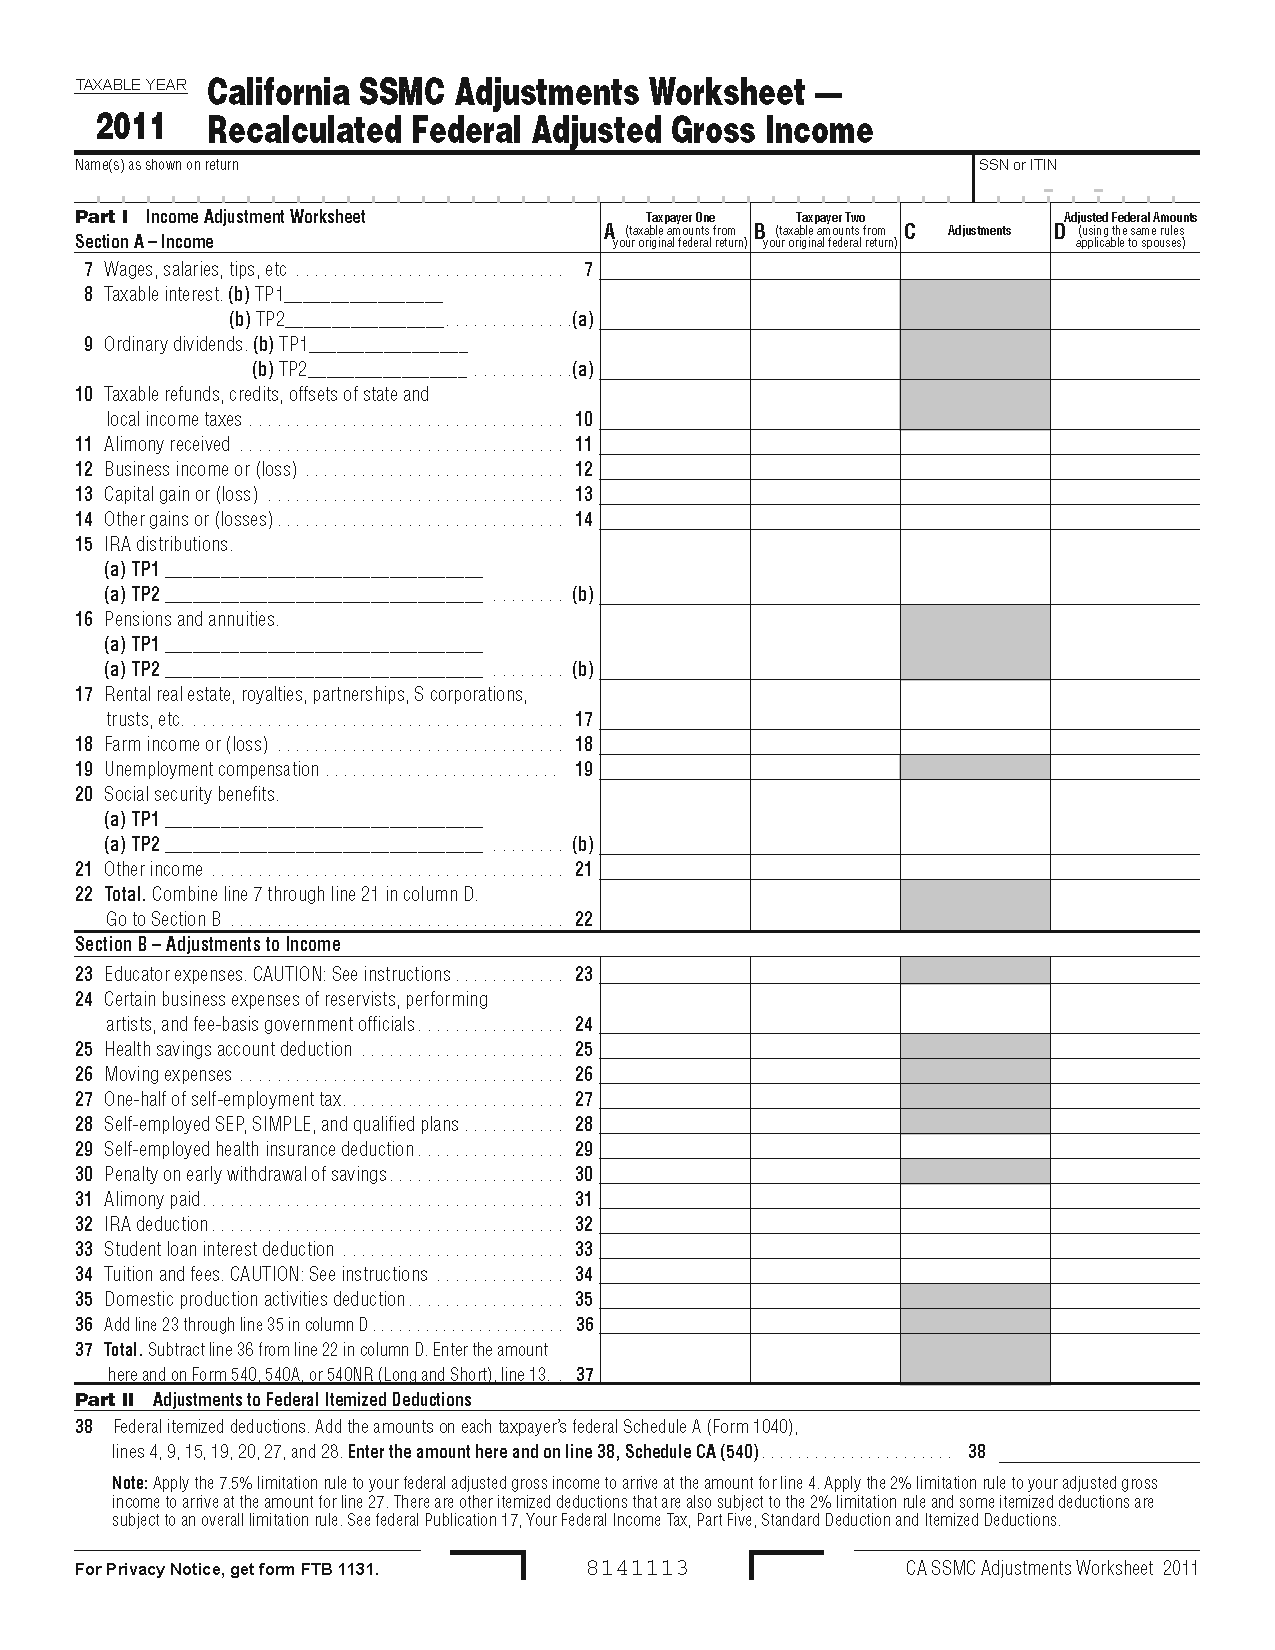 Itemized Deduction Limitation Worksheet